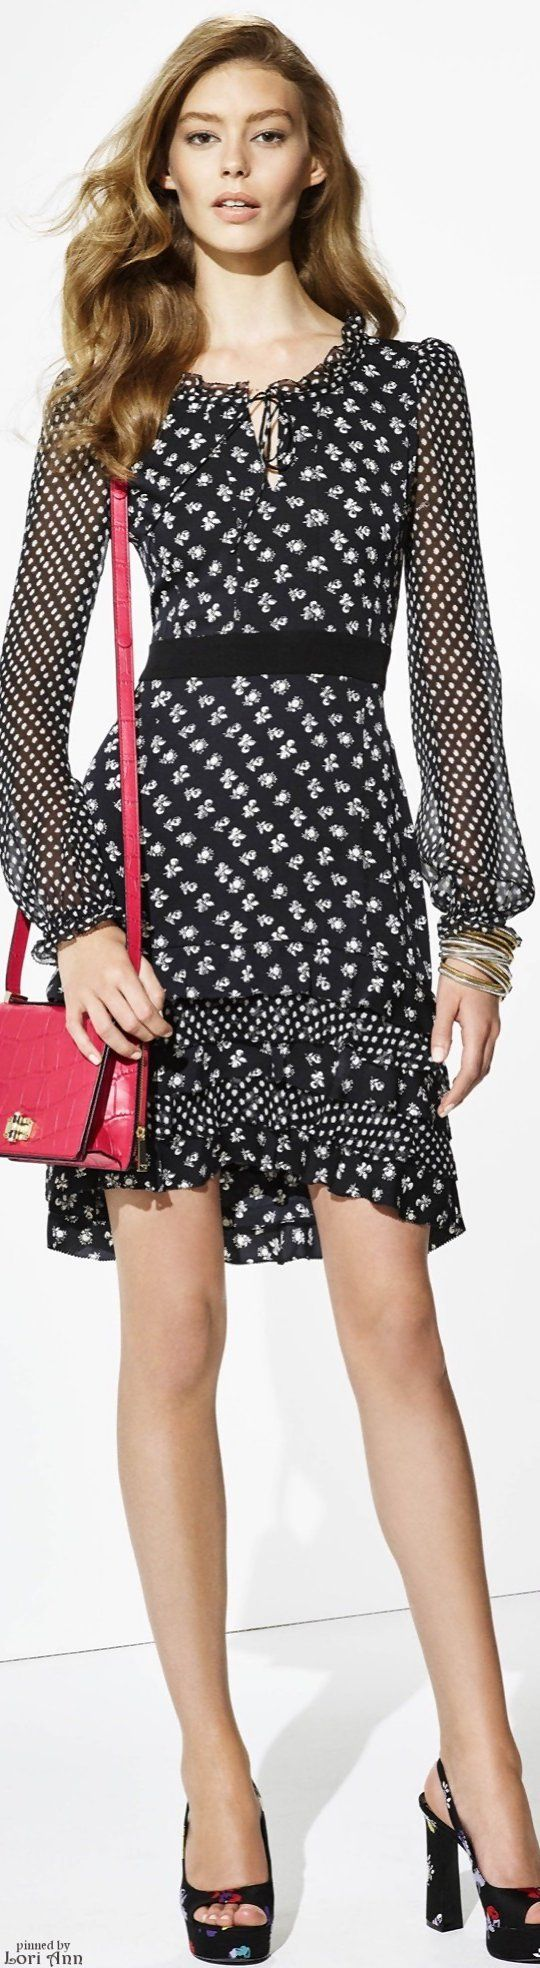 Diane von Furstenberg Resort | Resort Style and chic fashion | sexy girl in print black dress | #Thejewelryhut